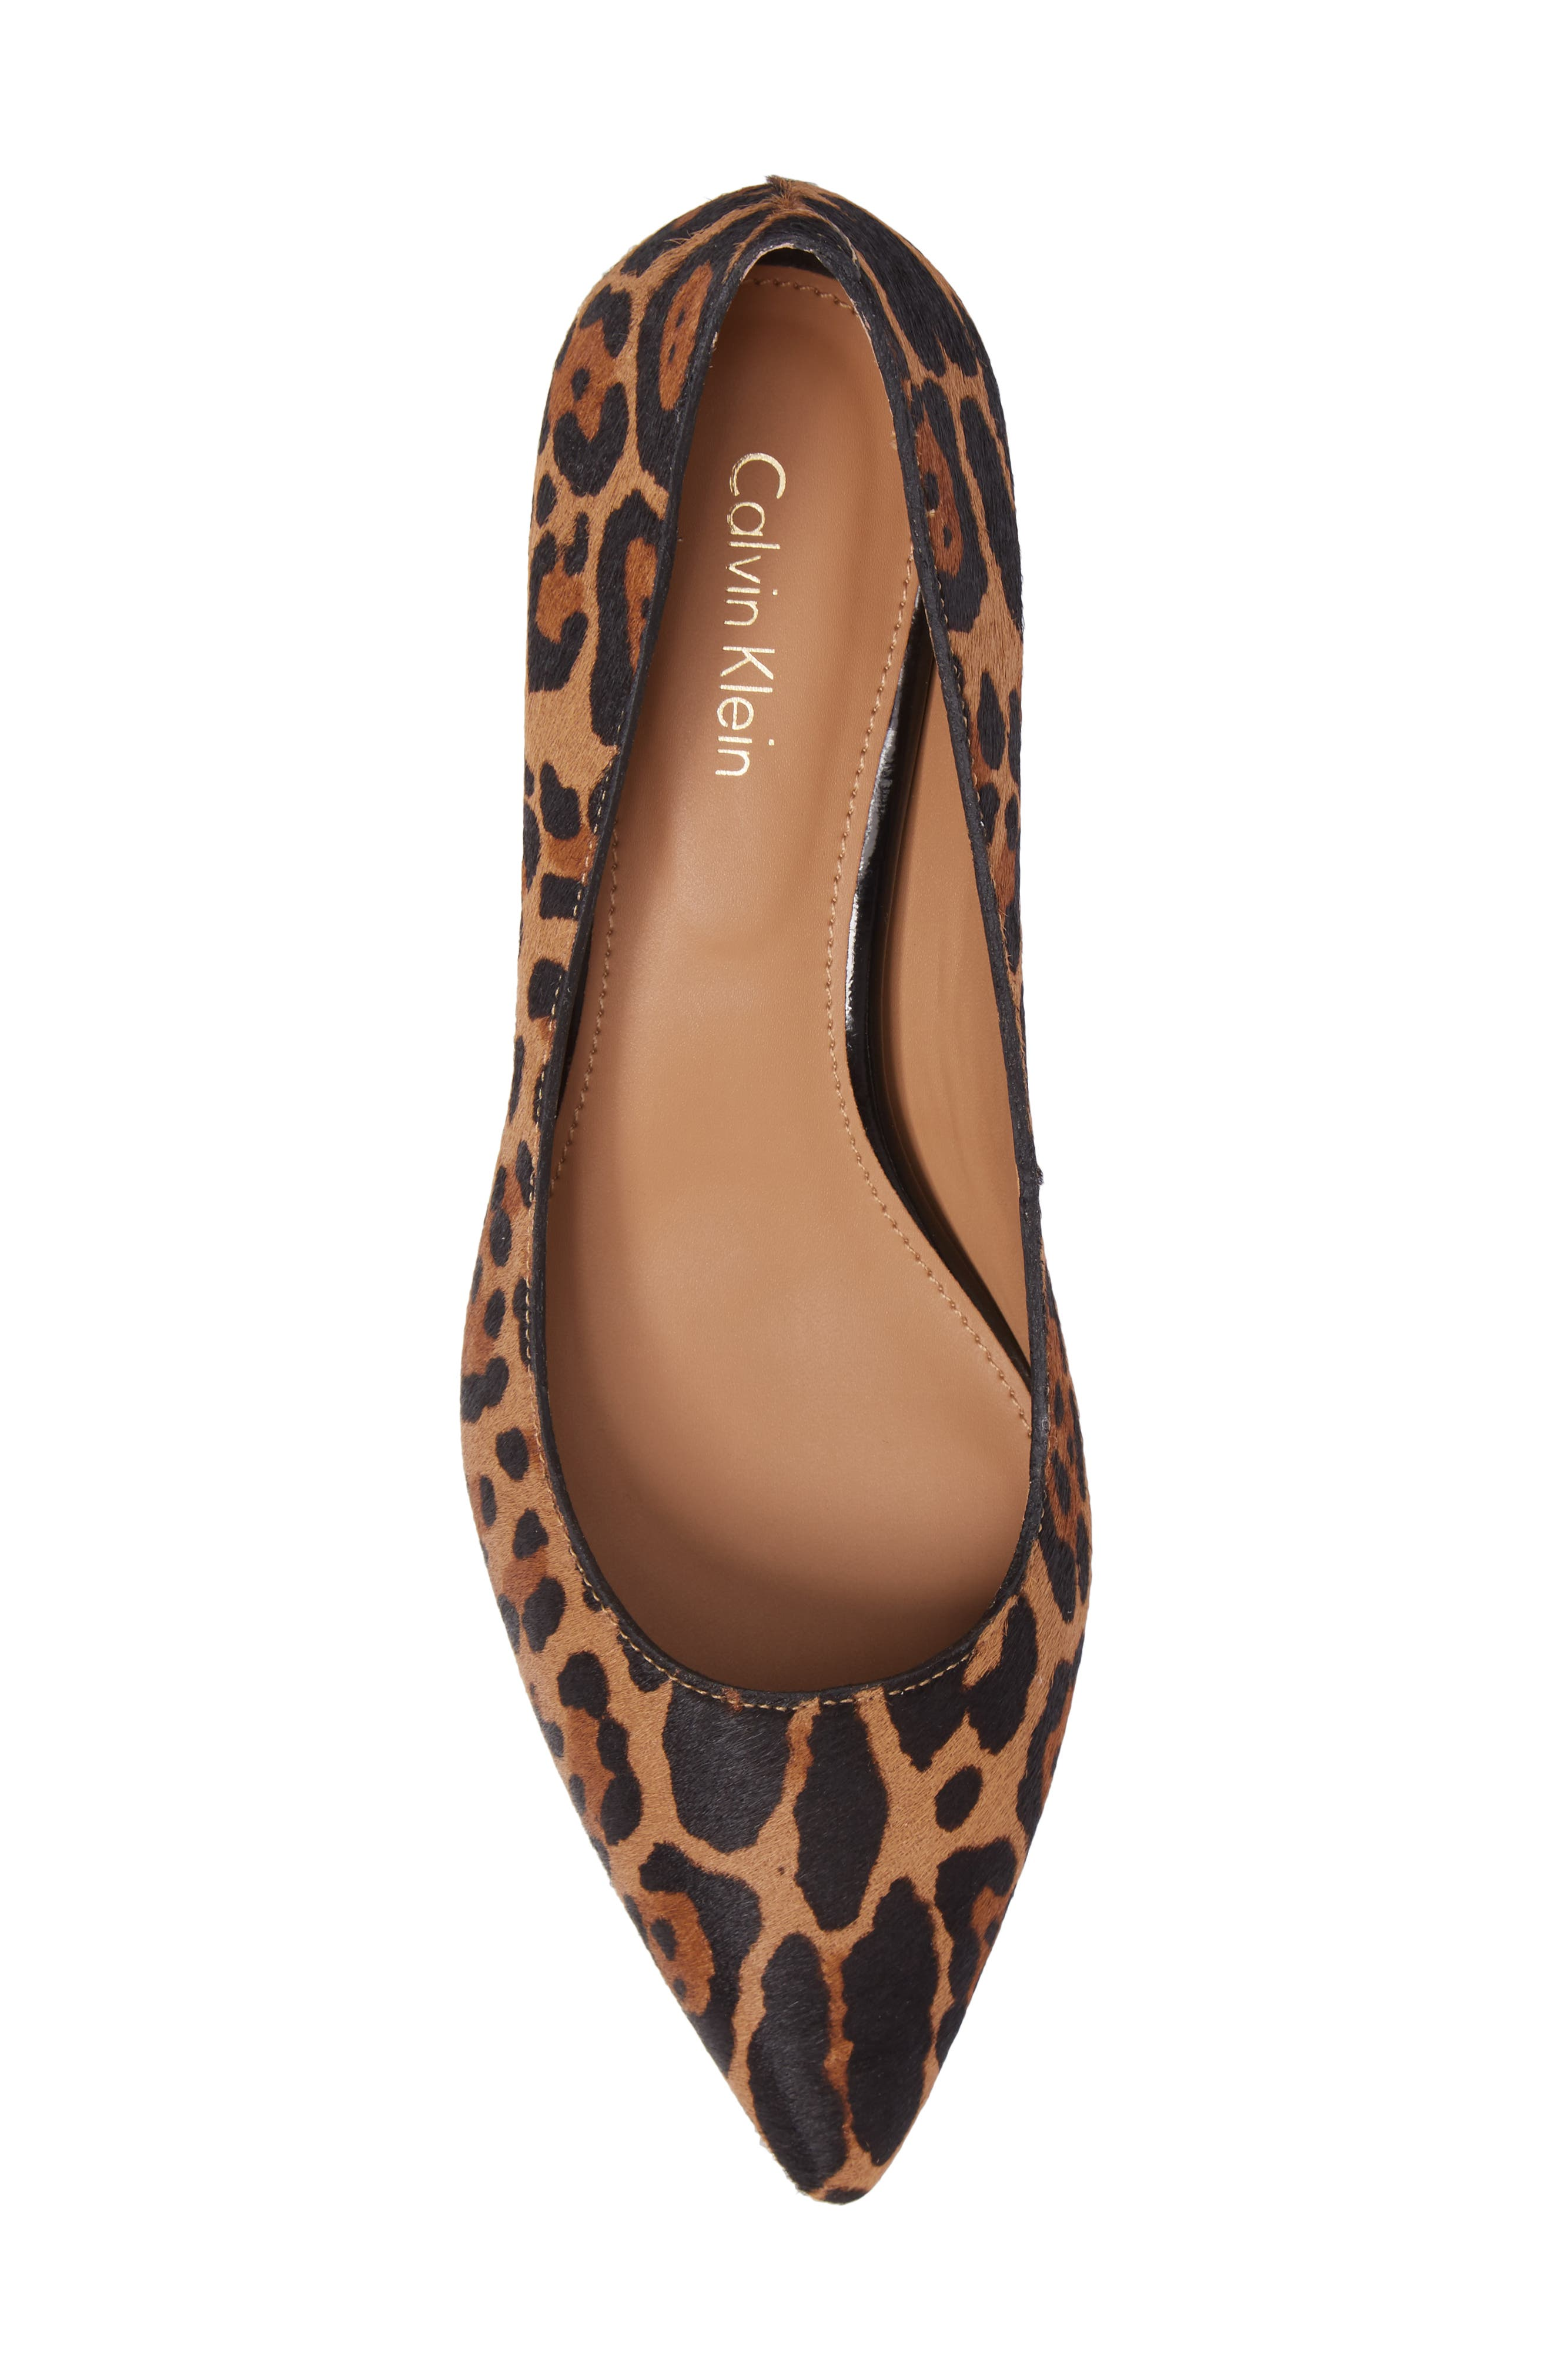 Genoveva Pump,                             Alternate thumbnail 5, color,                             Natural Leopard Hair Calf